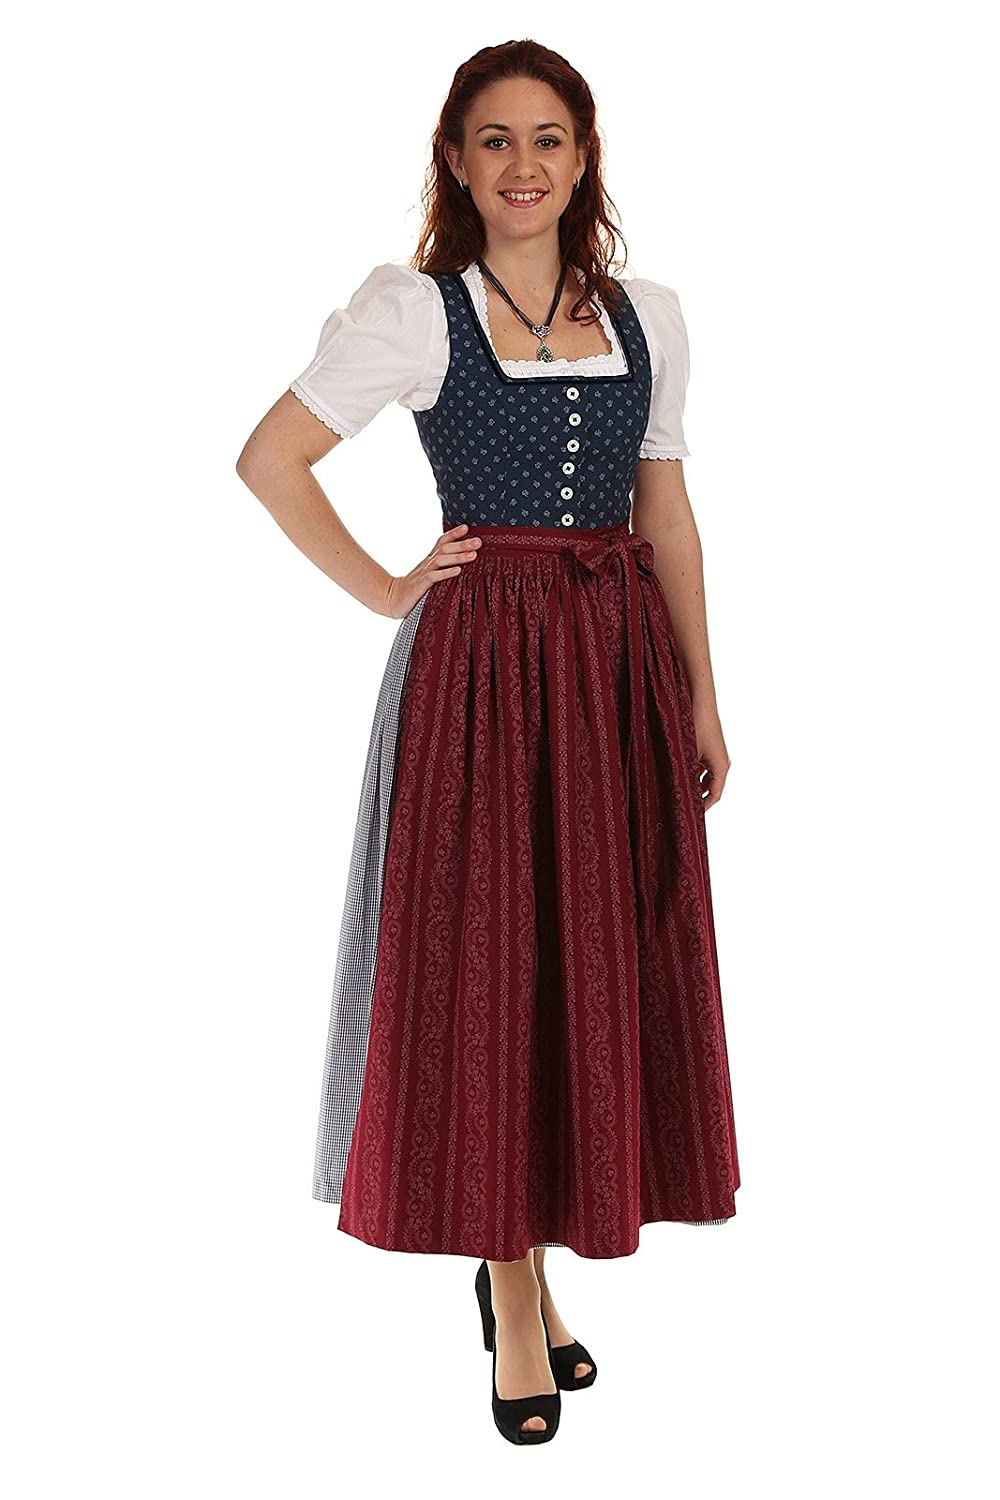 dirndl kaufen g nstig oktoberfest dirndl trachtenmode 28. Black Bedroom Furniture Sets. Home Design Ideas